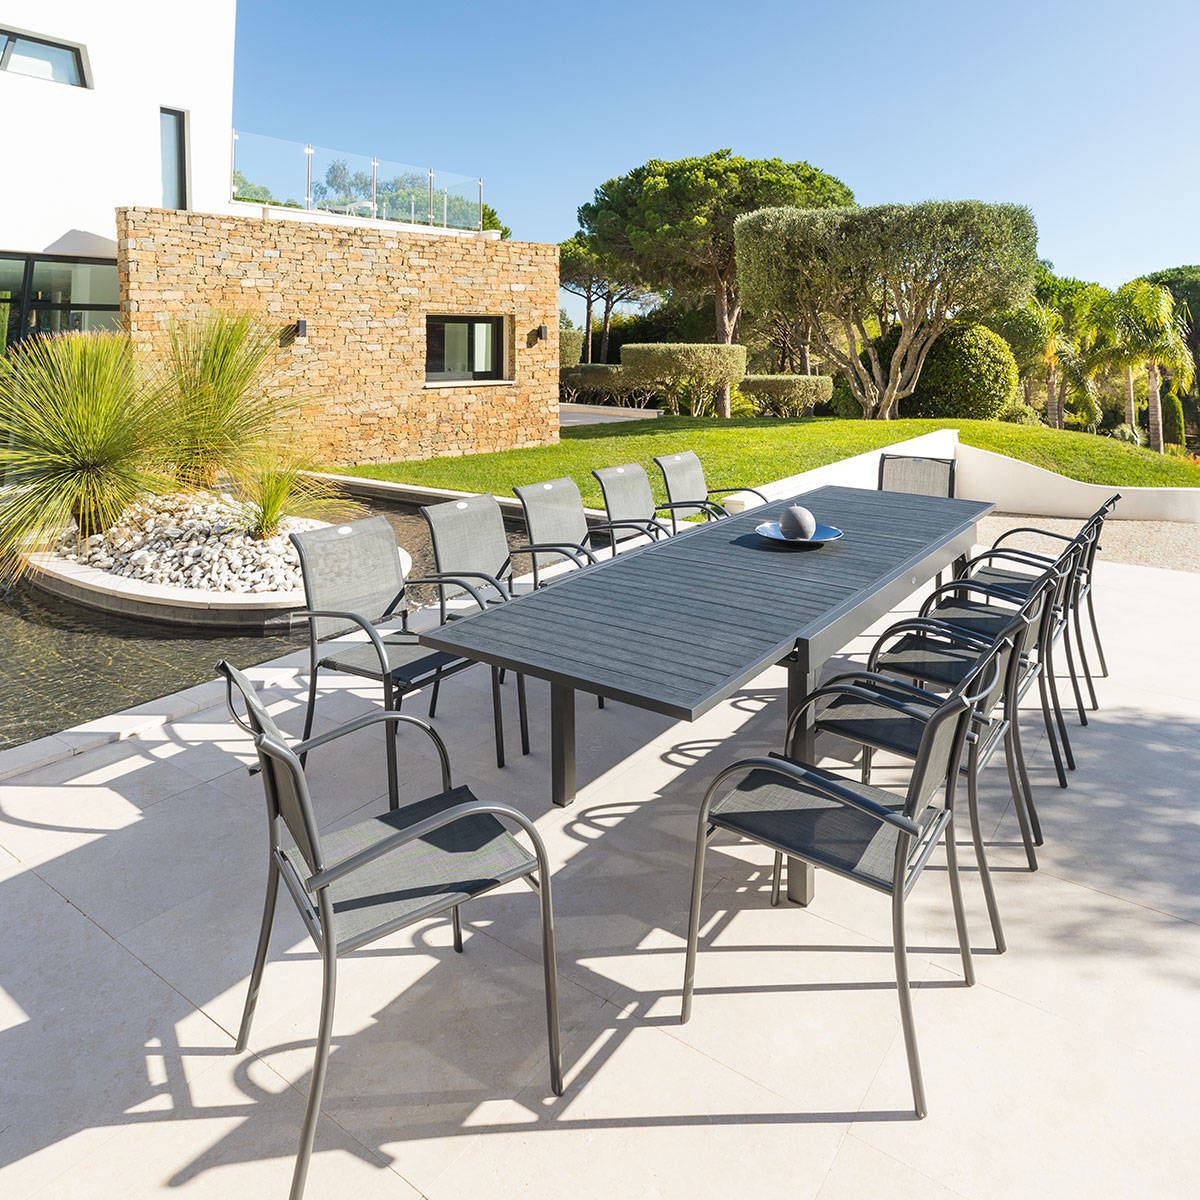 Truffaut Mobilier De Jardin Table De Jardin Extensible Piazza Anthracite U Gris Places